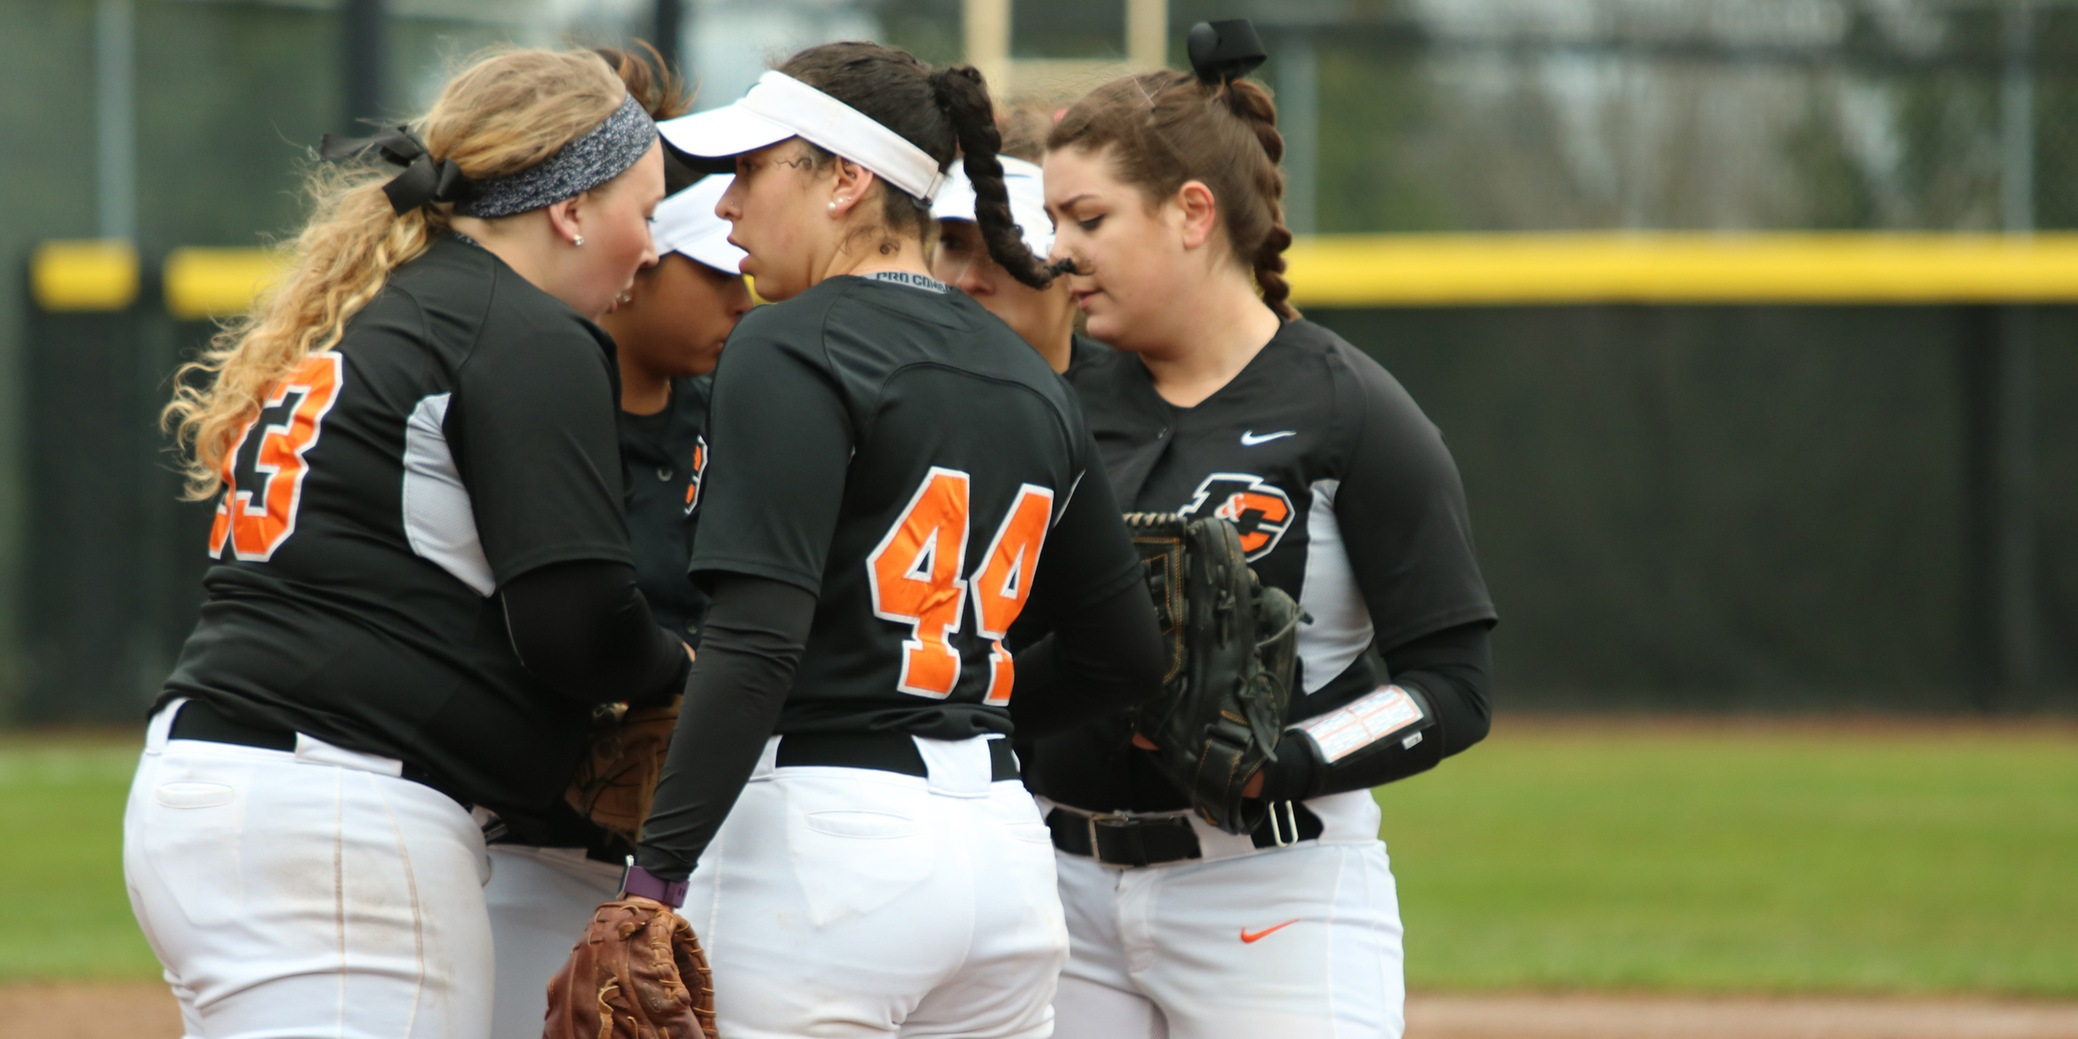 Lewis & Clark loses to Puget Sound after quick turnaround; Game two suspended